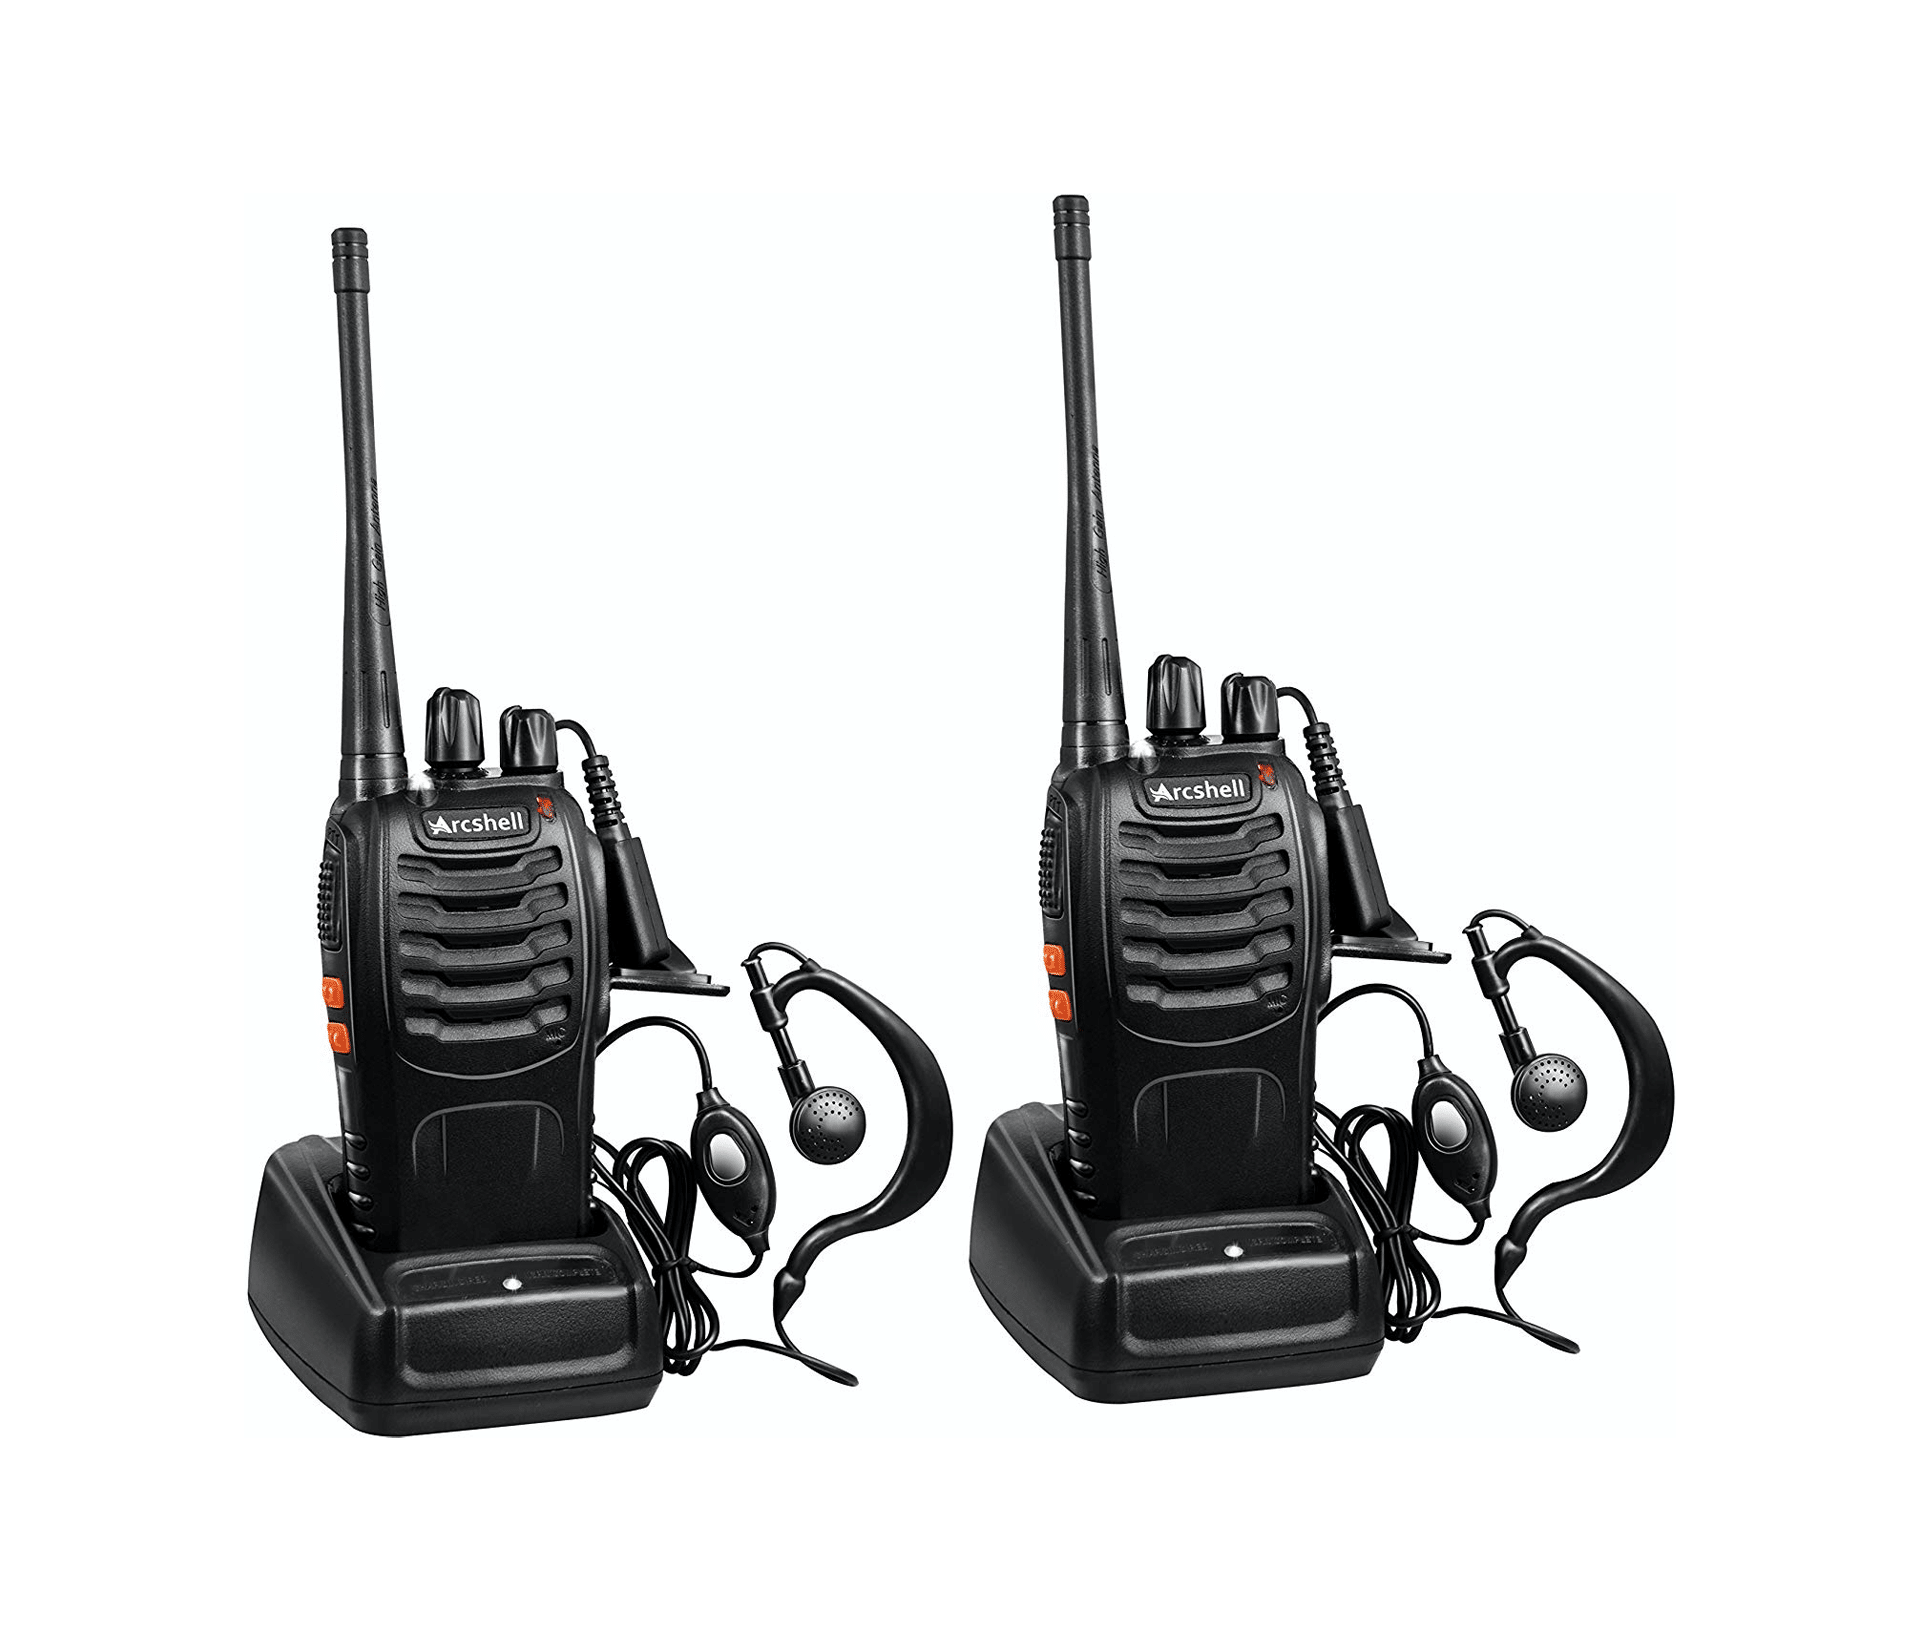 Arcshell Rechargeable Two-Way Radios